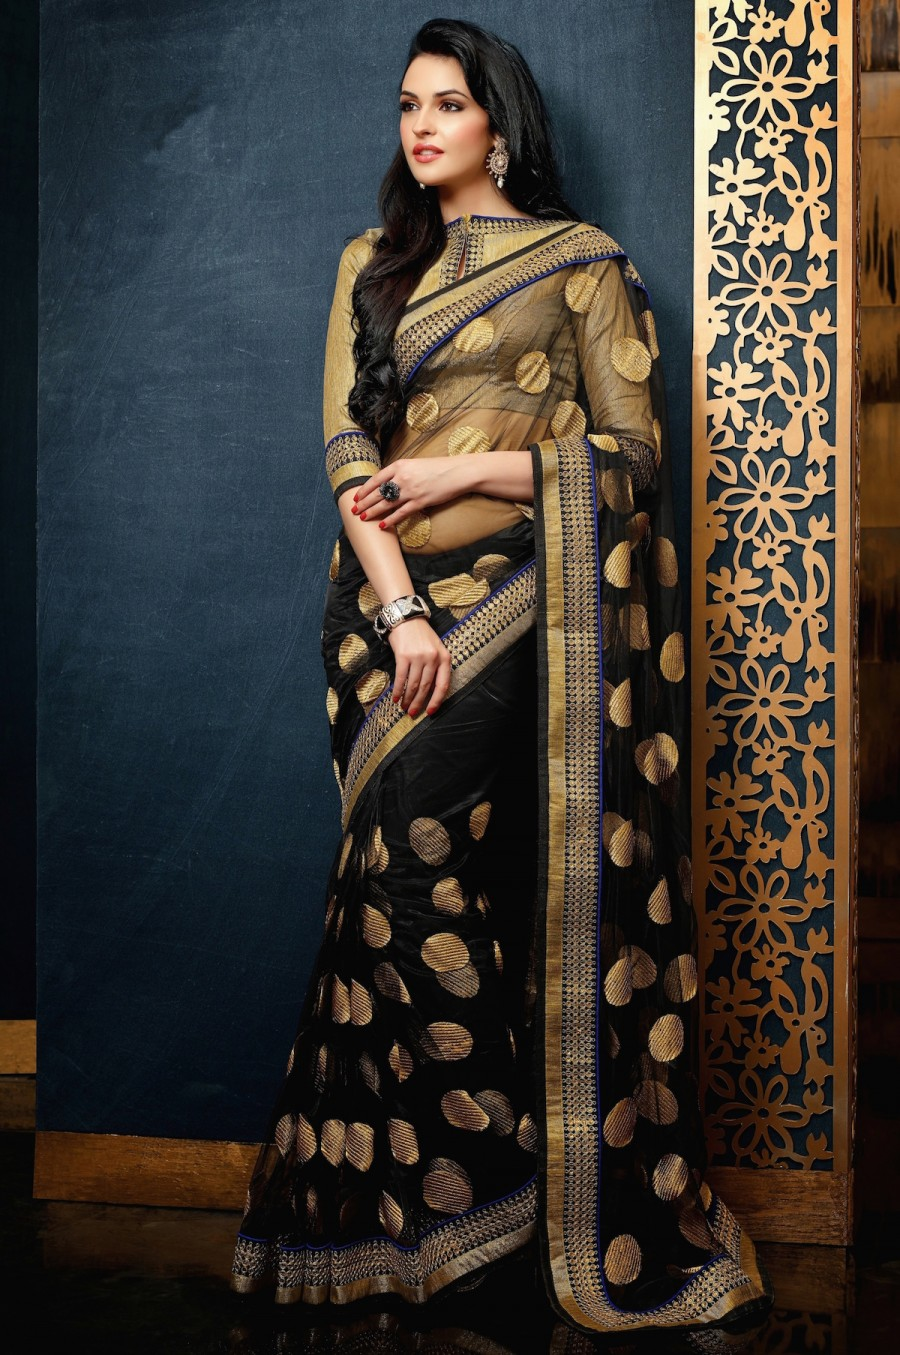 Buy Santana black net saree has gold zari work pallu and broad lace border with artsilk blouse Online